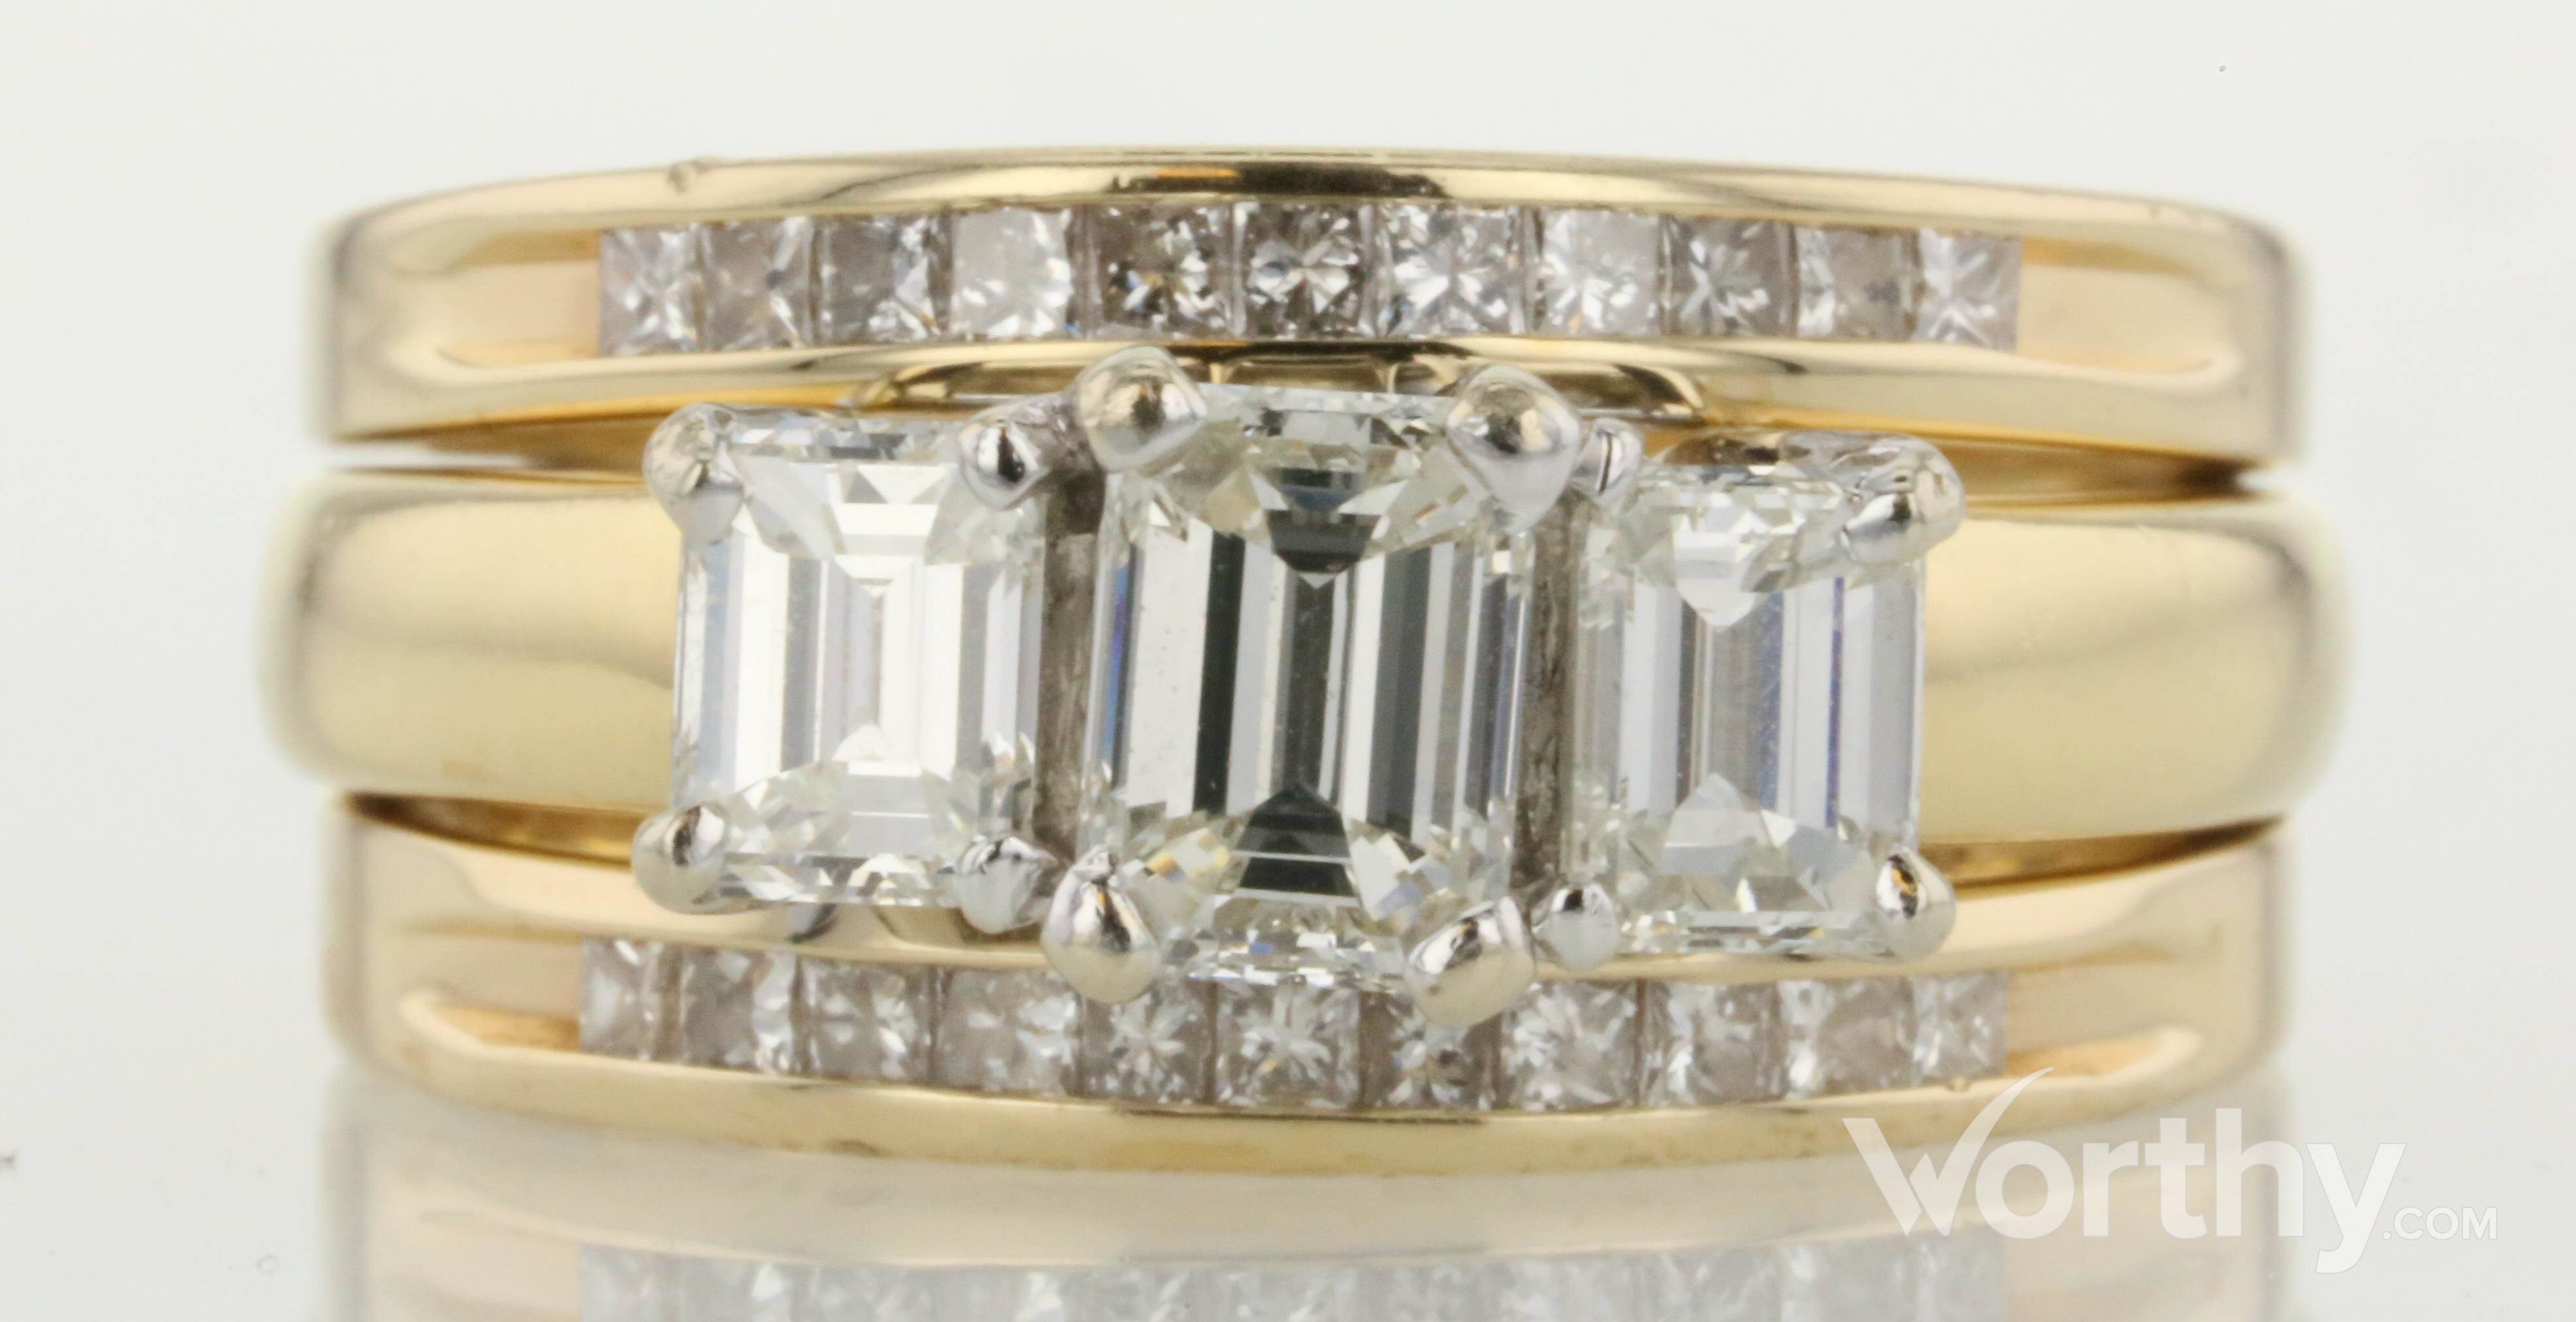 a99a2e0736f 0.76 CT Emerald Cut Bridal Set Ring Sold at Auction for $1400